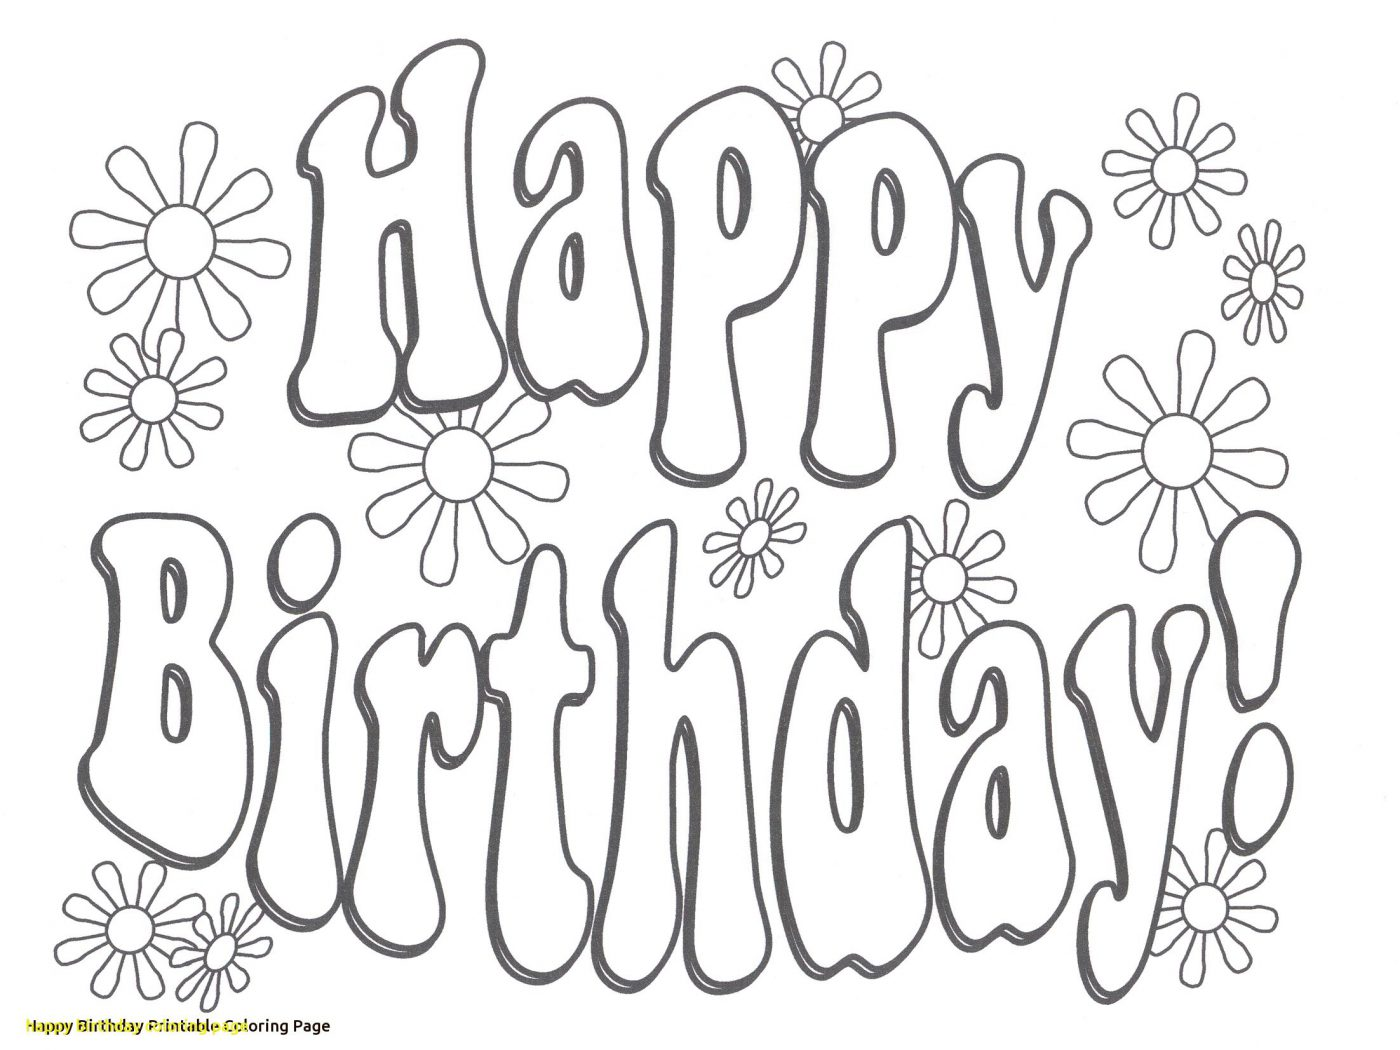 1400x1050 Printable Happy Birthday Grandpa Coloring Pages Colouring Great